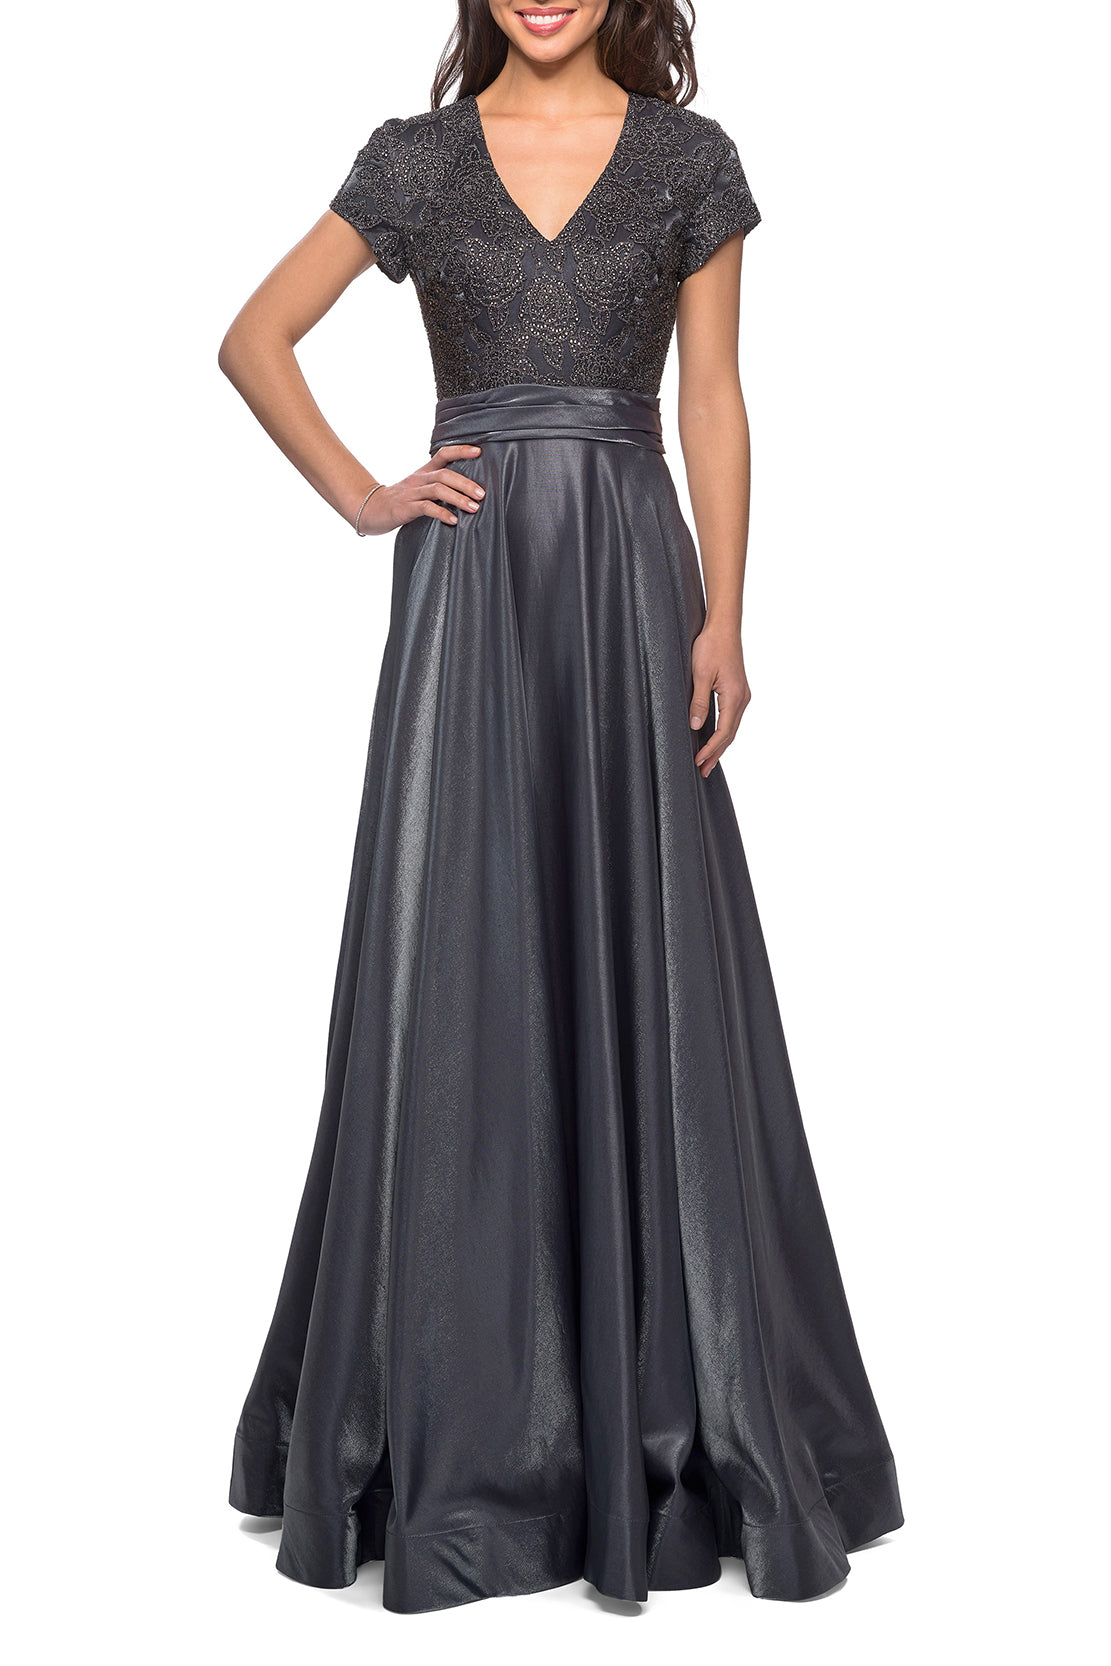 La Femme Mother of the Bride Style 26447